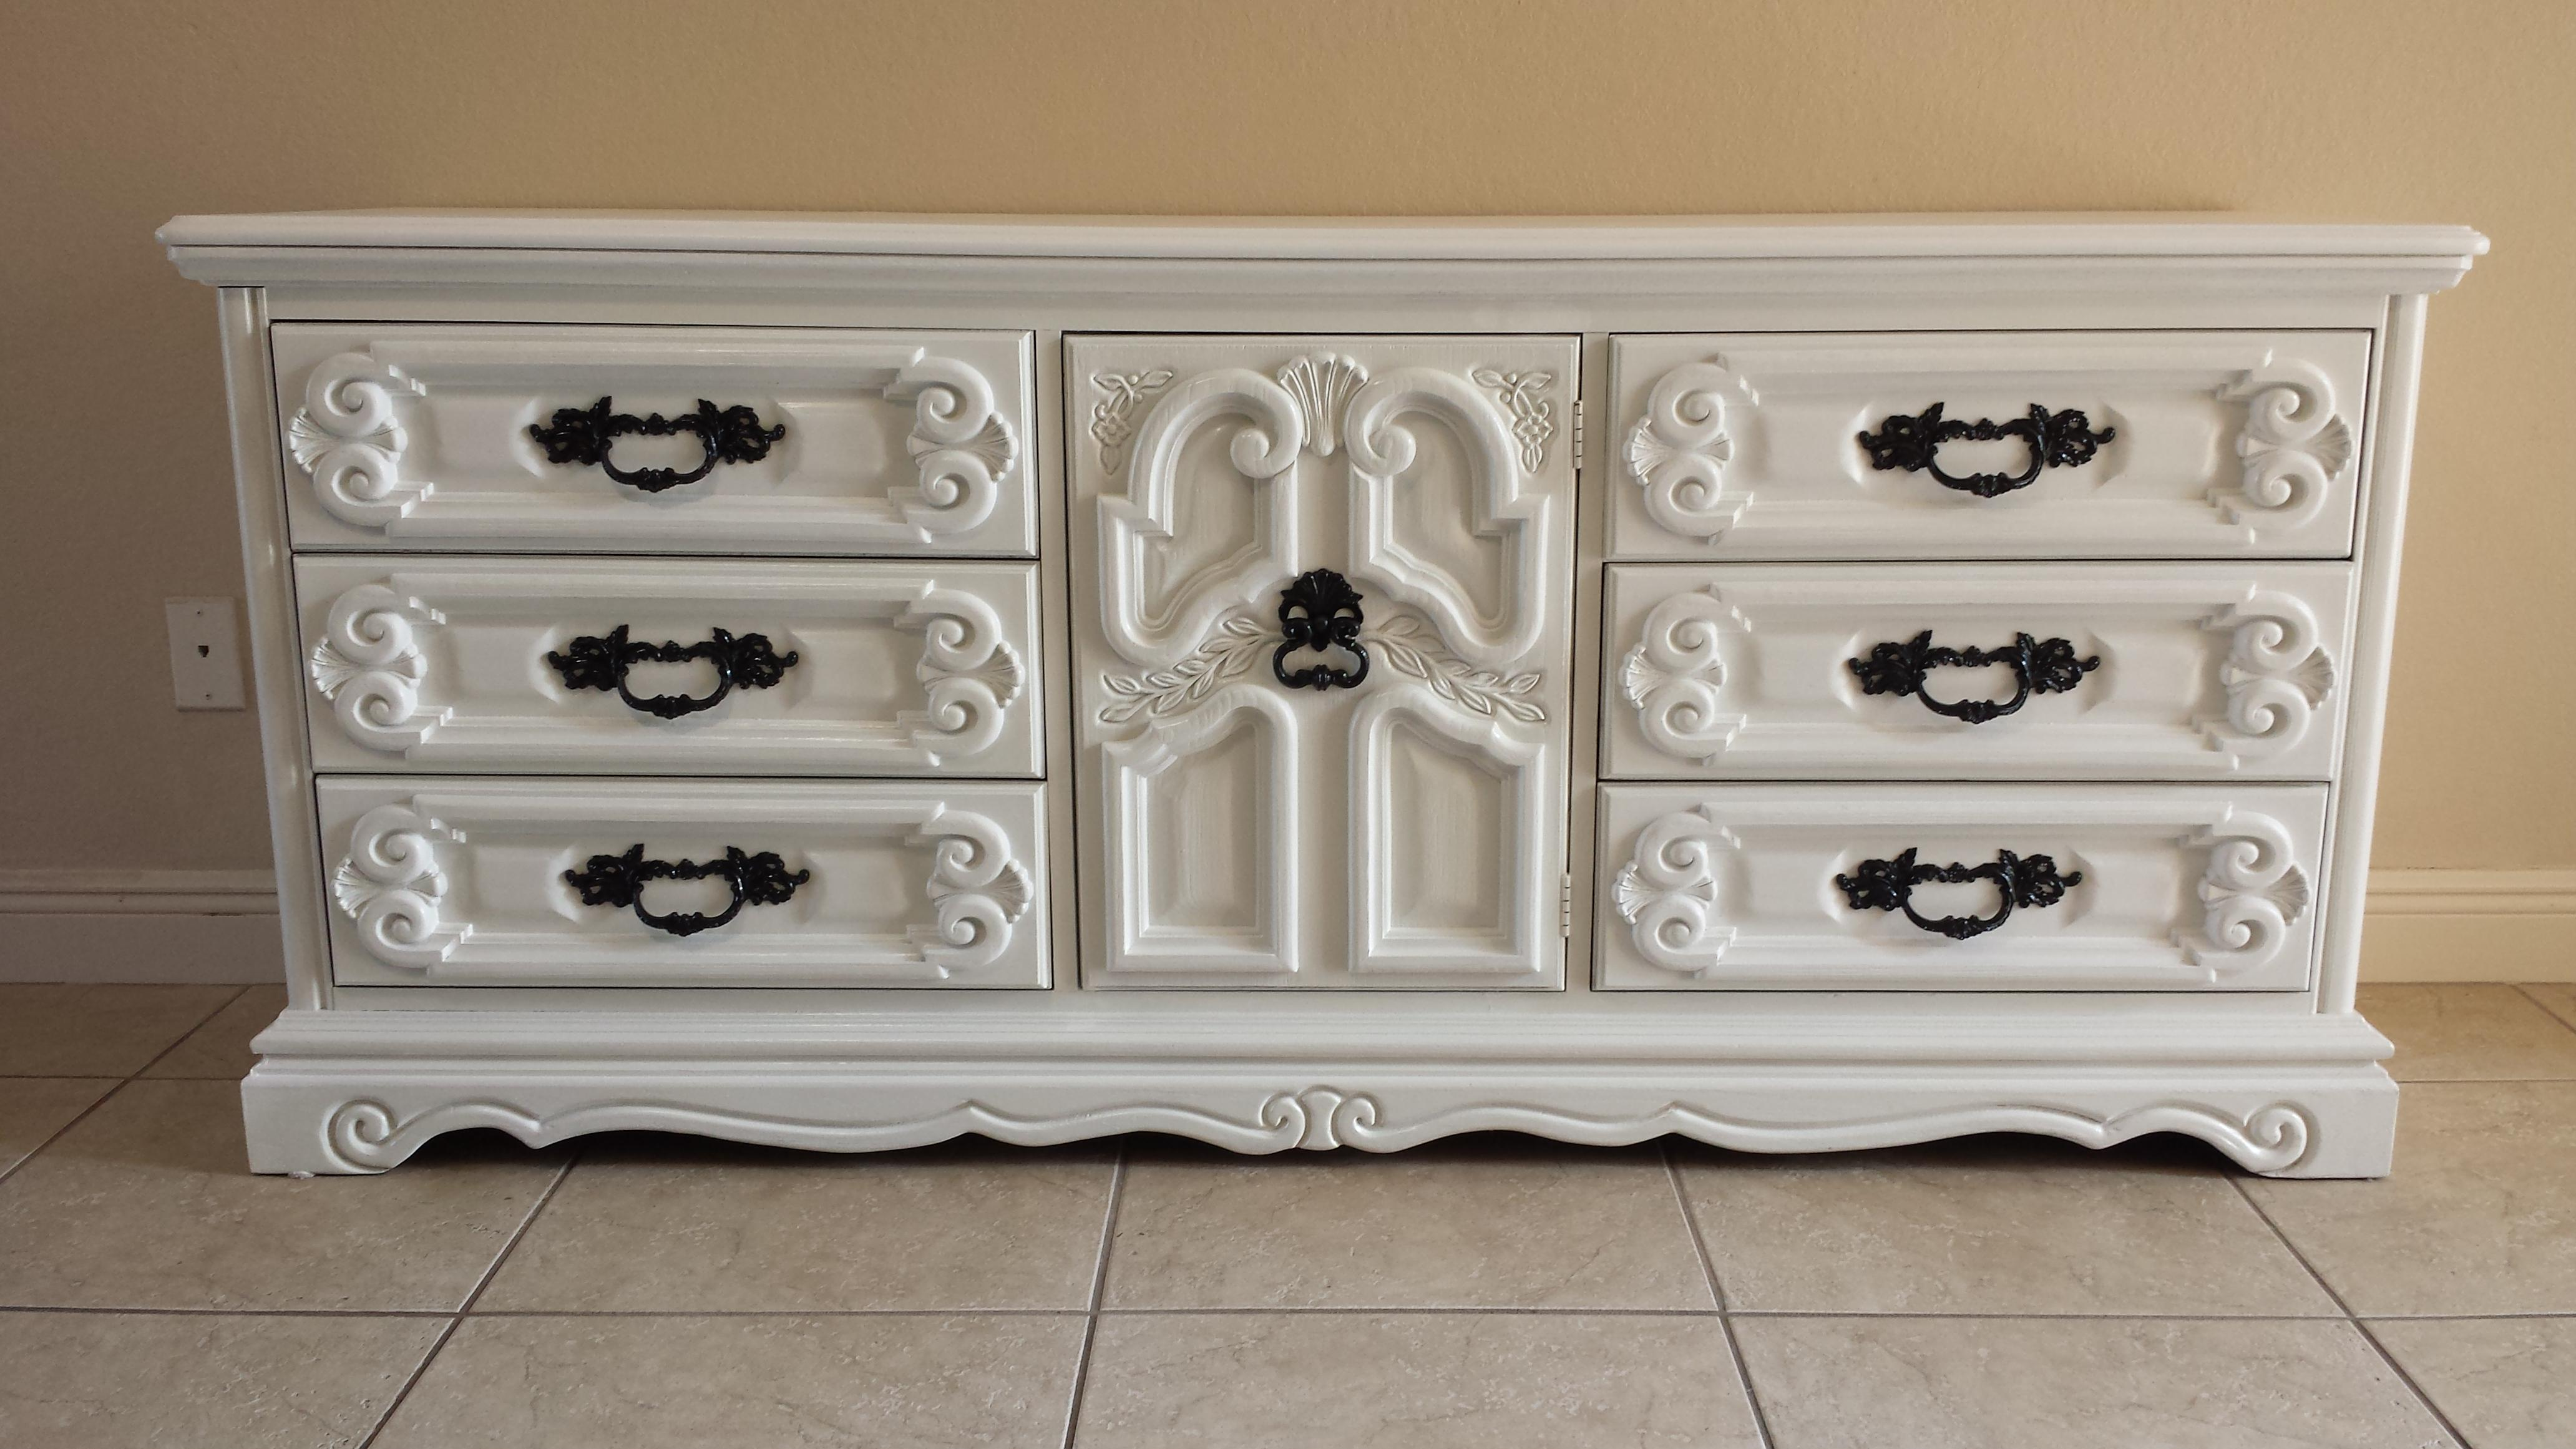 Beau This Listing Is For An Amazing Dresser Buffet. The Gorgeous Ornate Look Was  Accomplished With. Islamic Burlington House Furniture ...